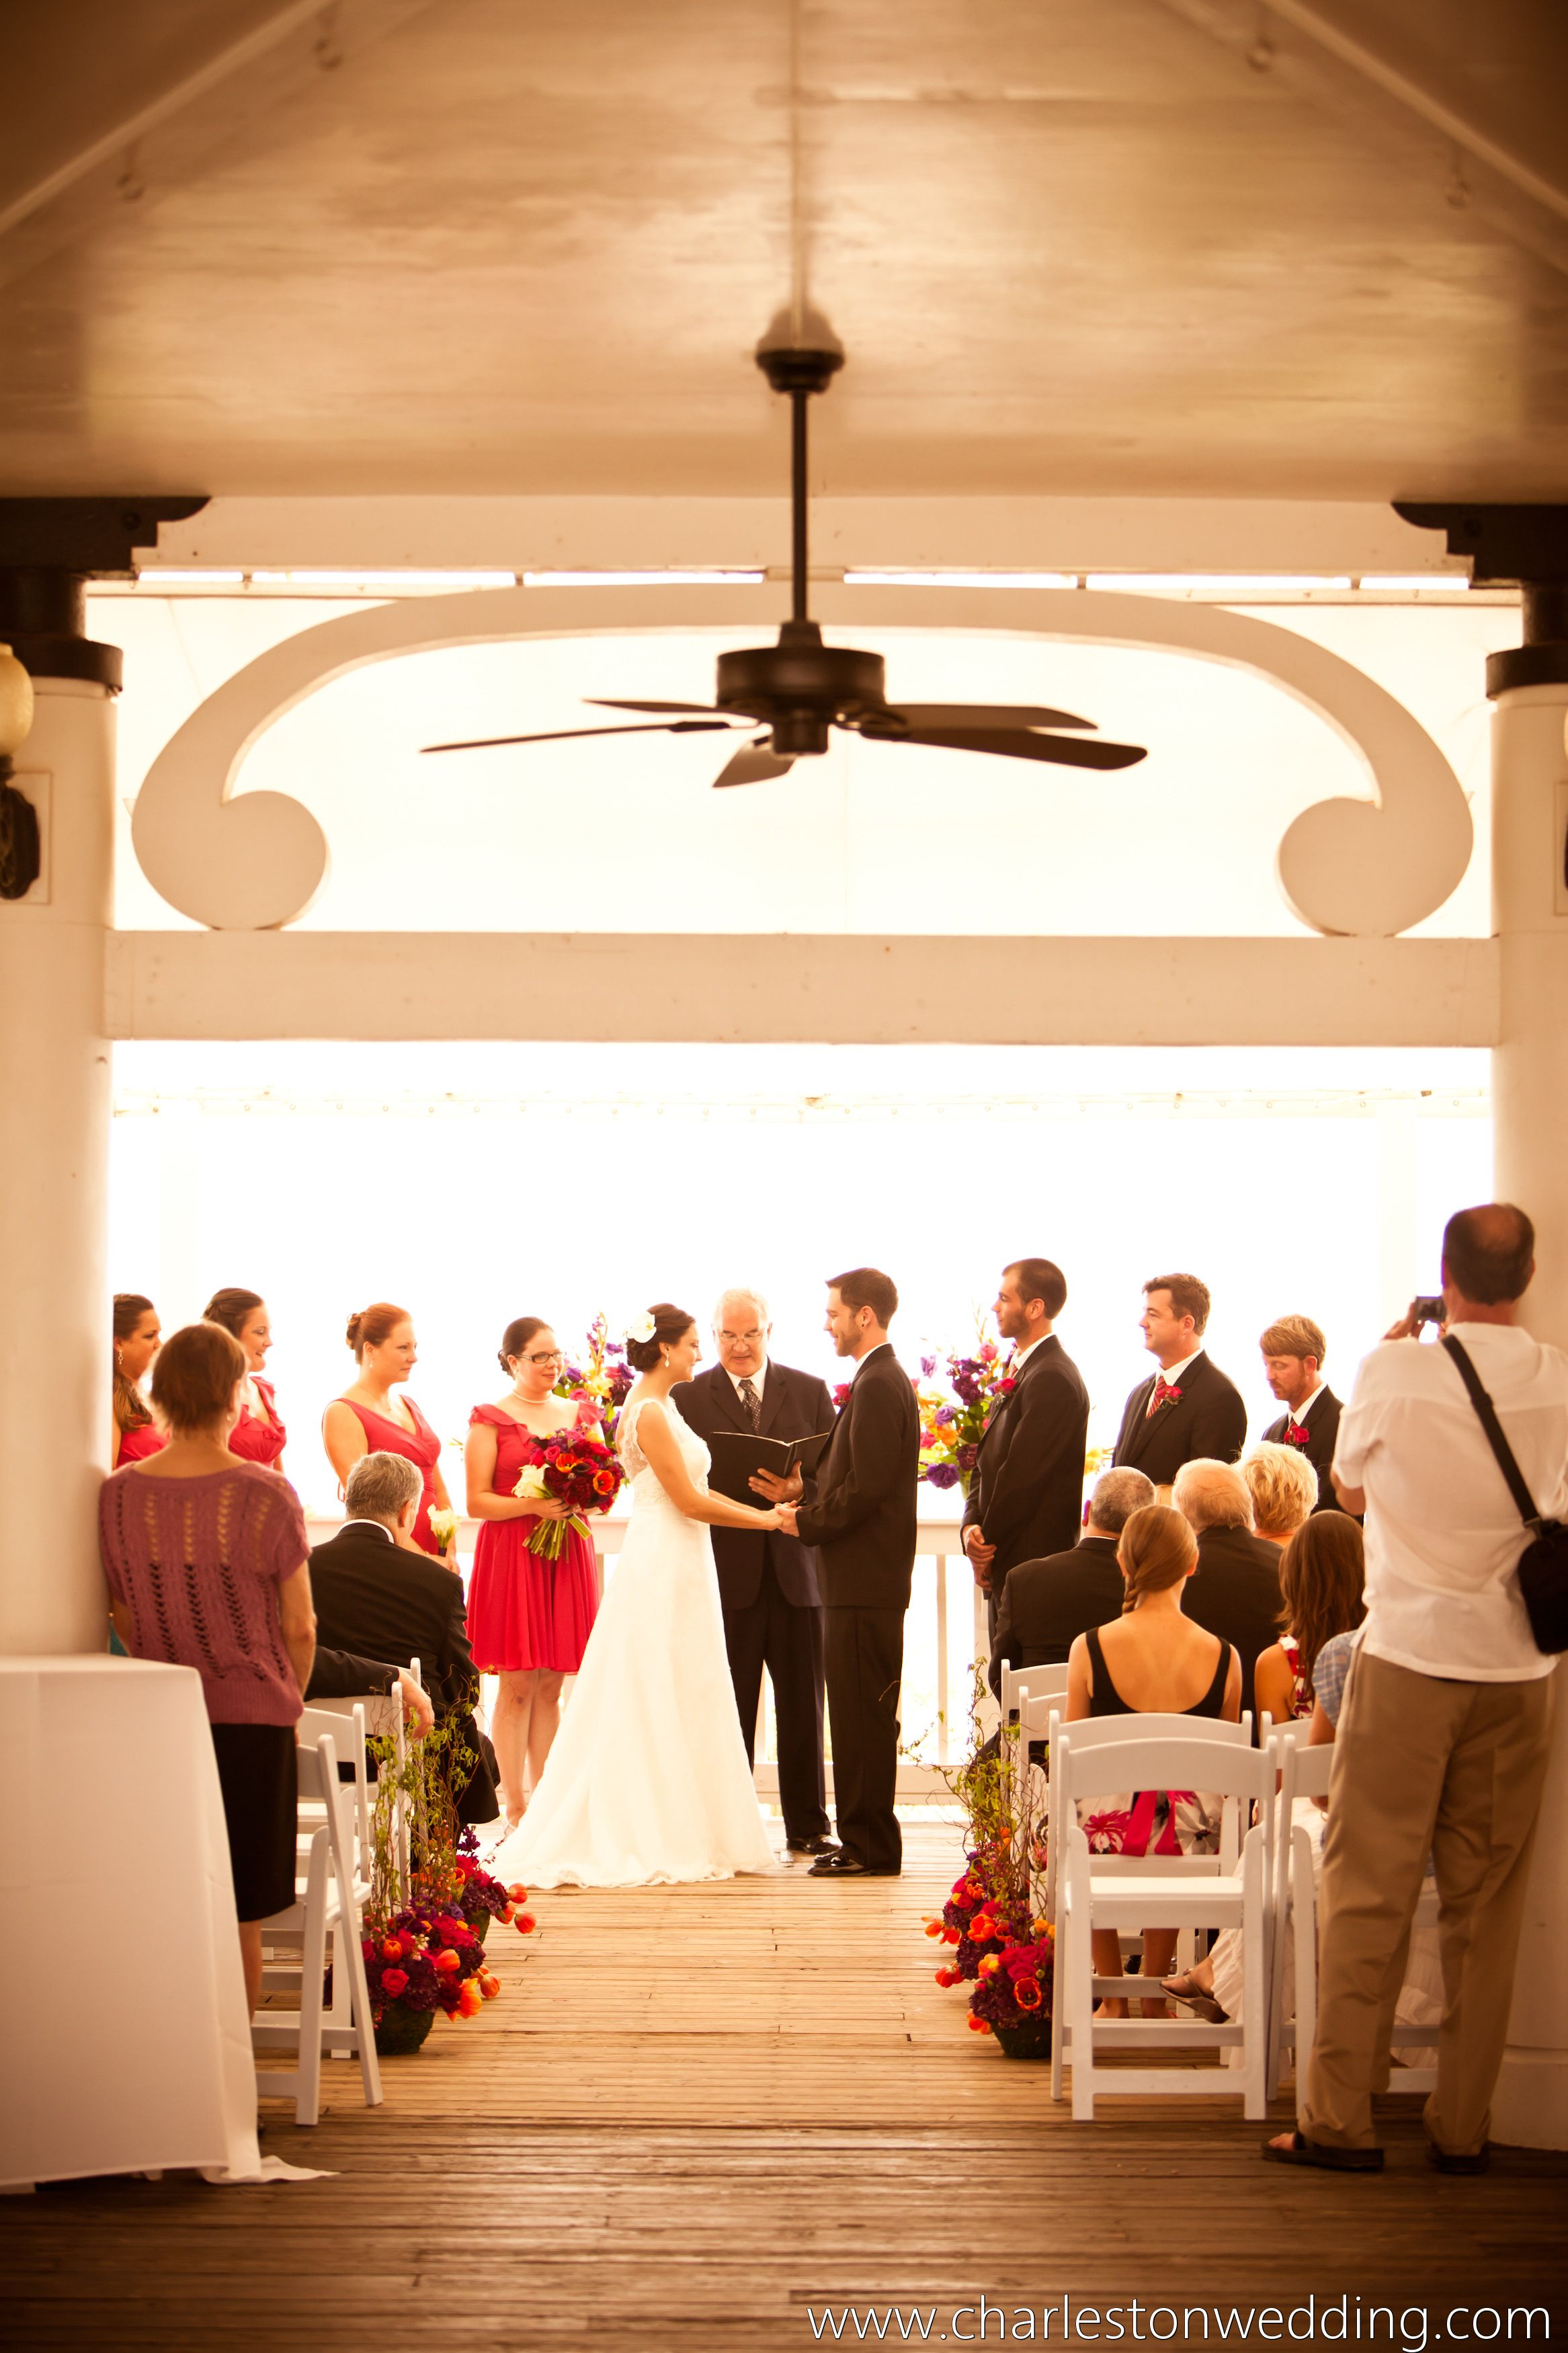 Perfect day for a wedding ceremony at Wild Dunes in the Gazebo.